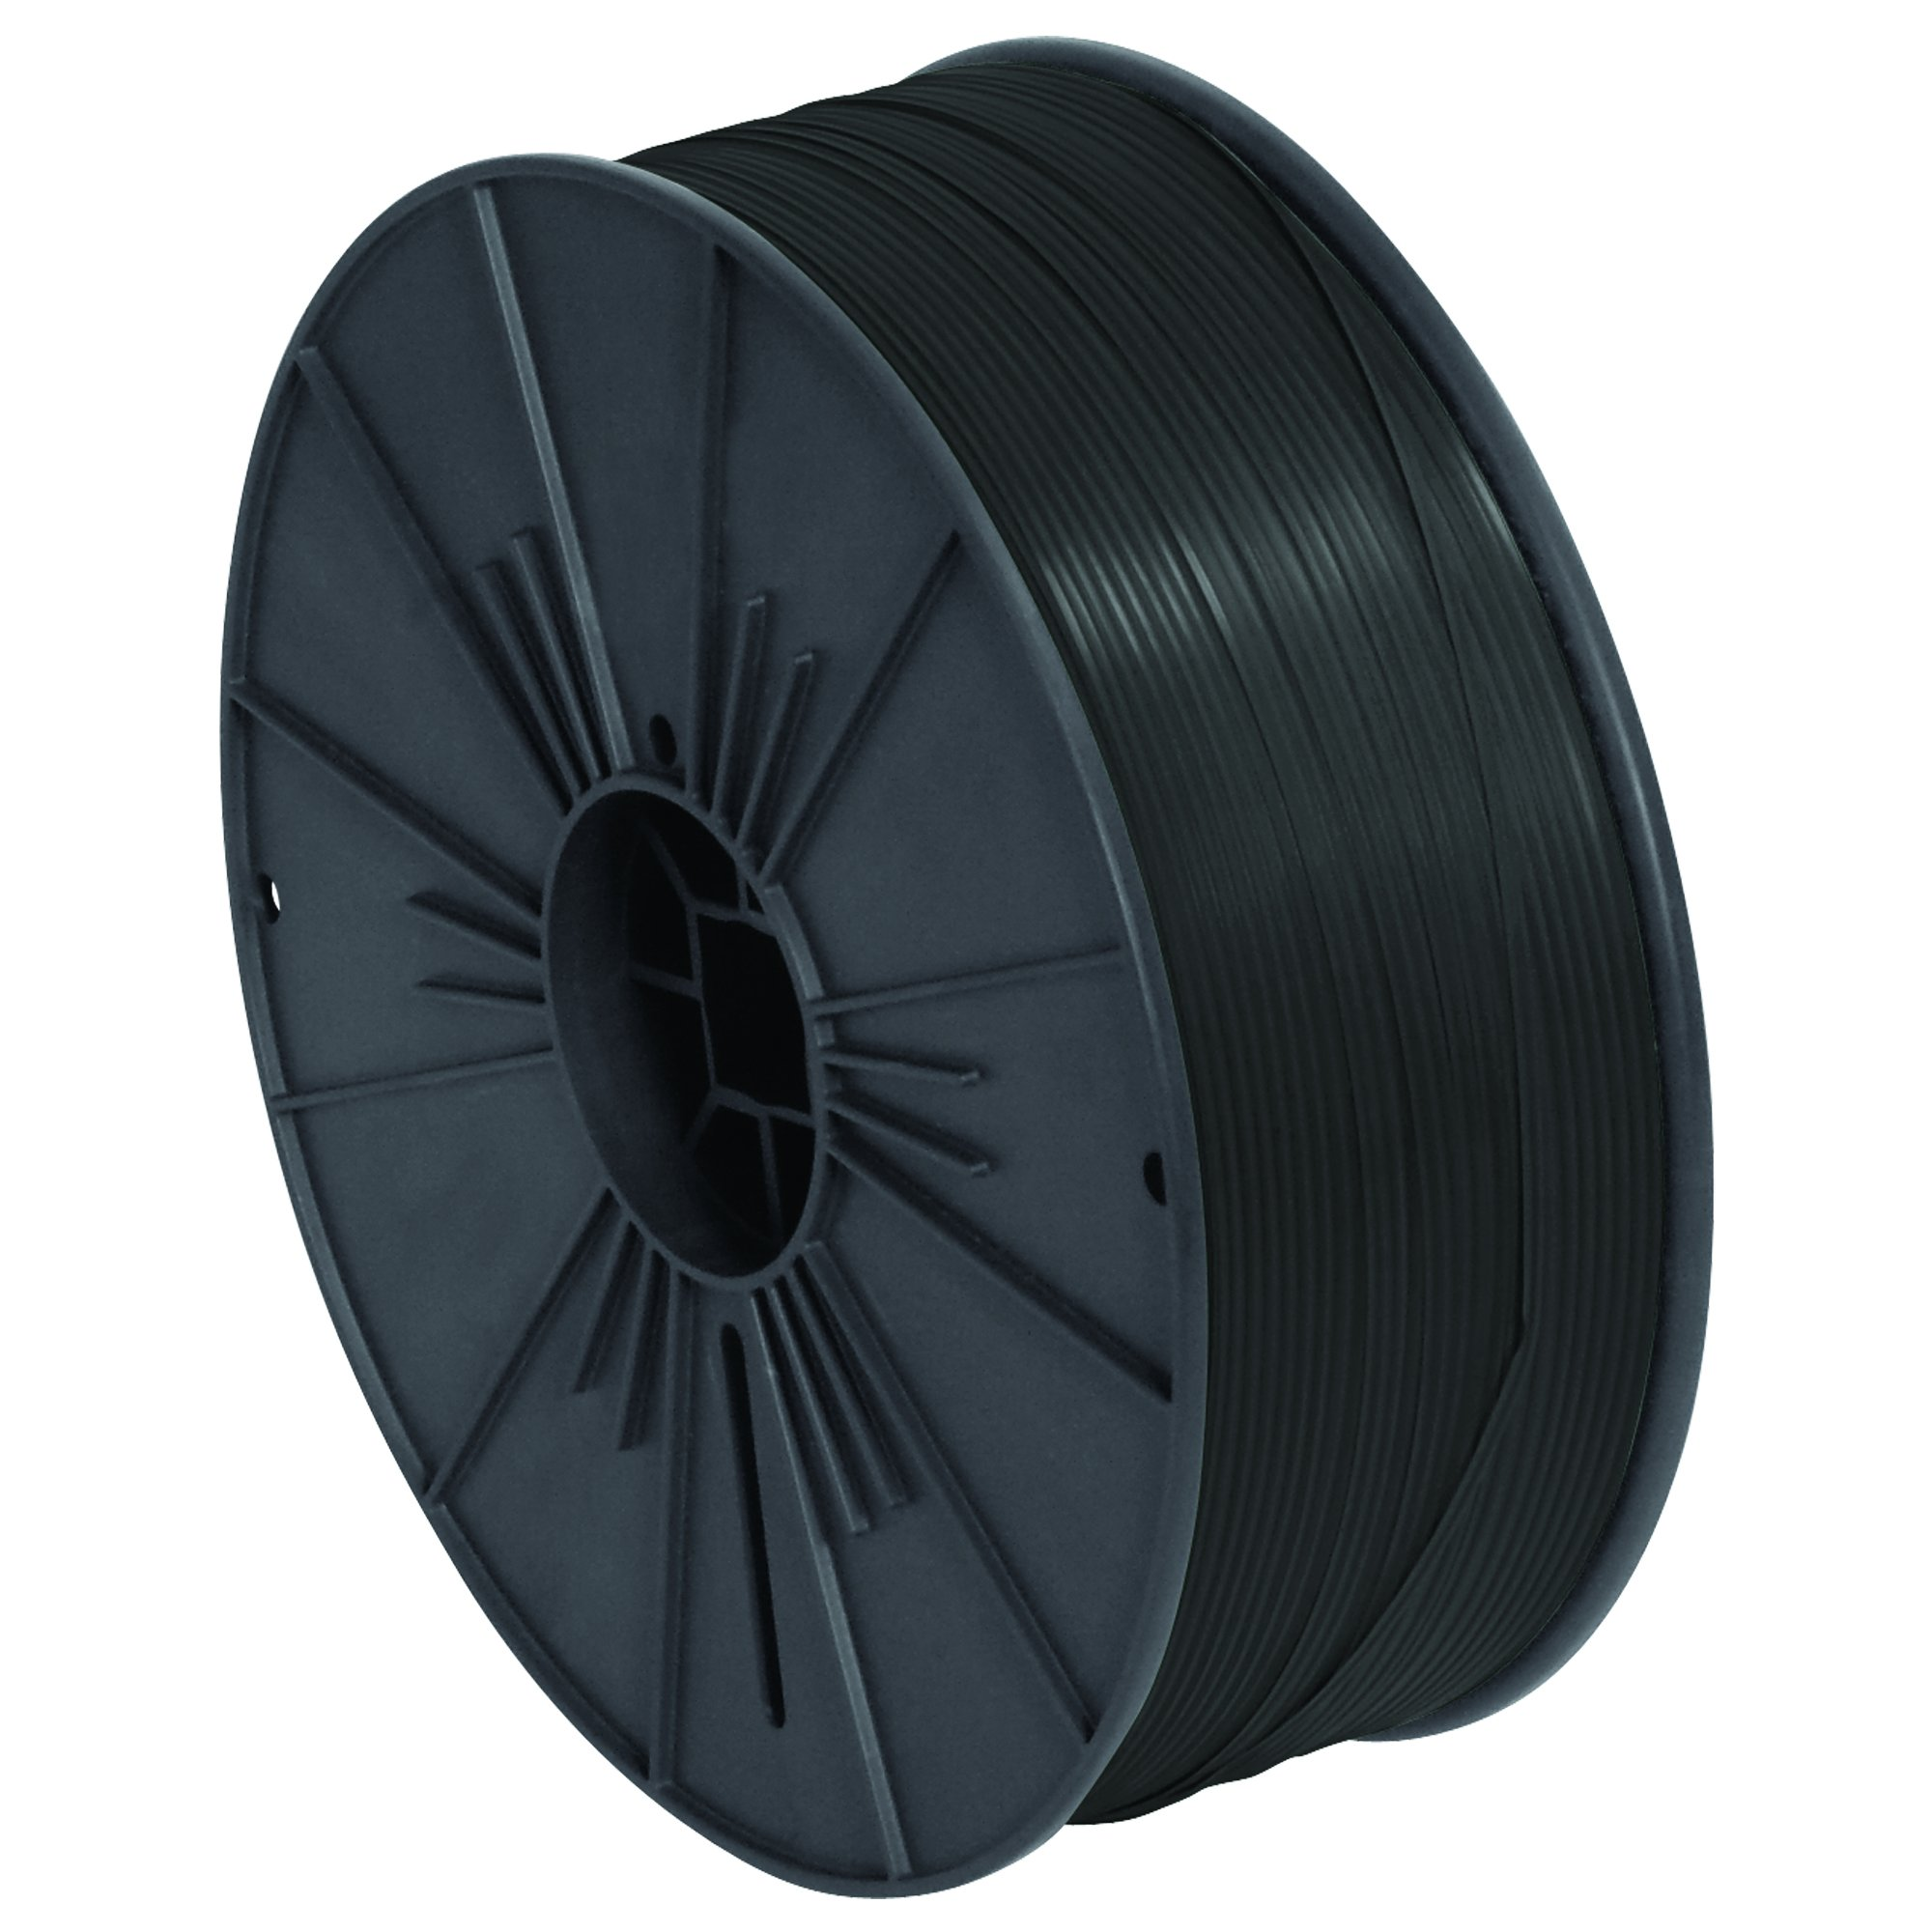 Ship Now Supply SNPLTS532K Plastic Twist Tie Spool, 5/32'' x 7000', 0.156'' width, black by Ship Now Supply